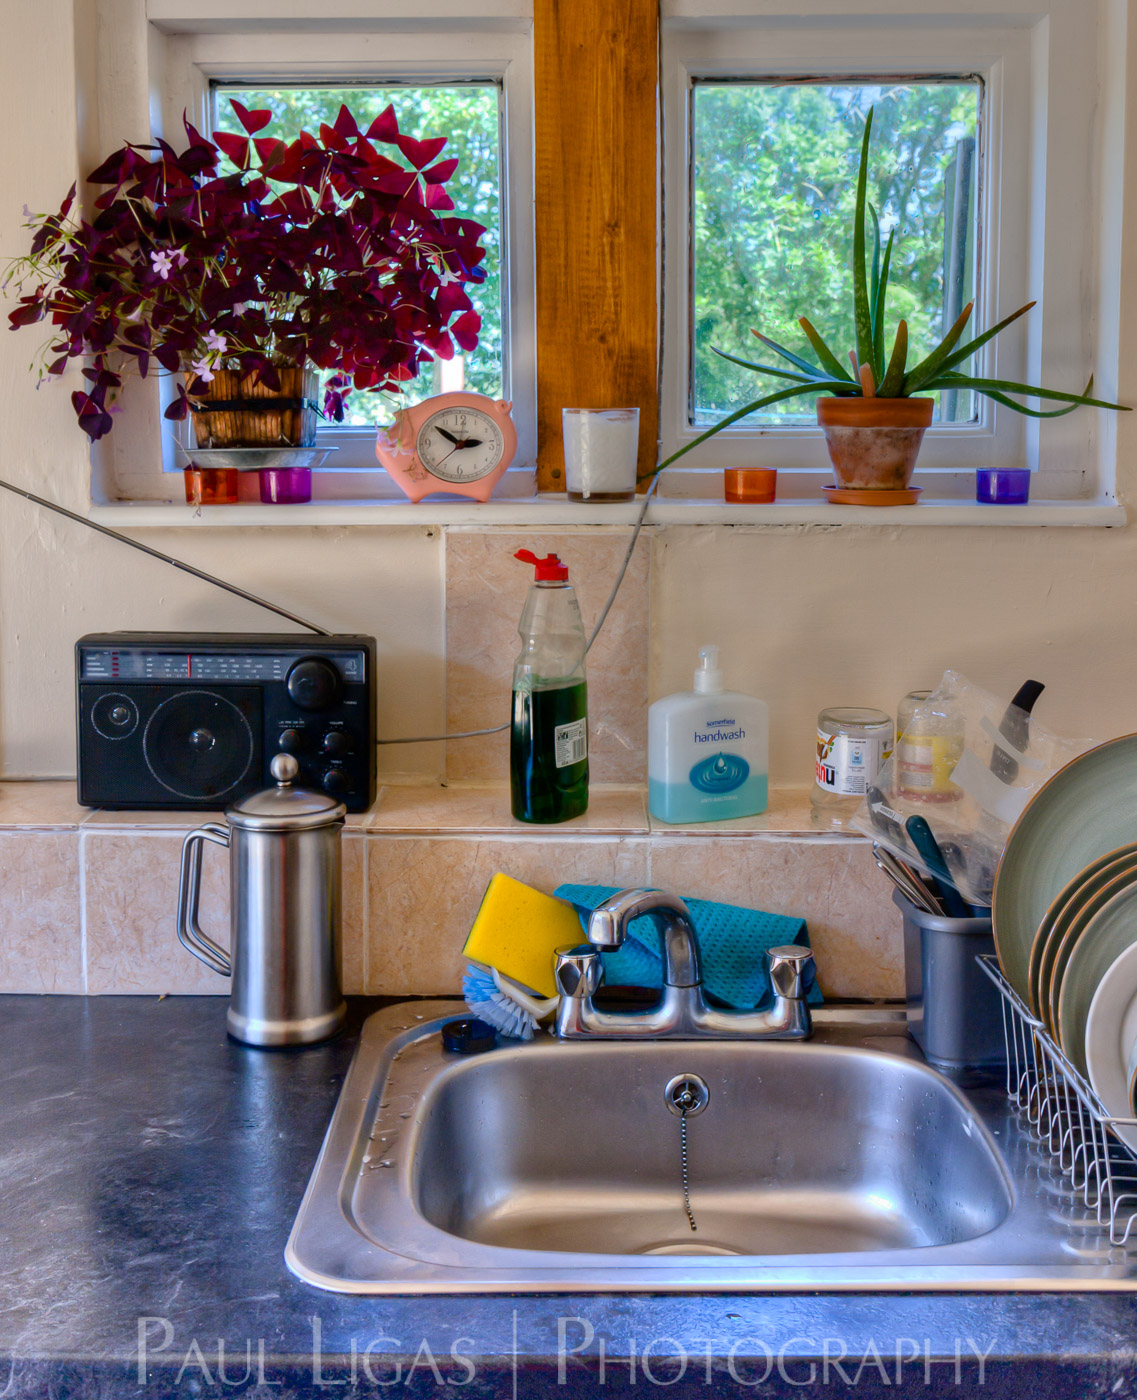 Kitchen Still Life, fine art photographer photography herefordshire 6754